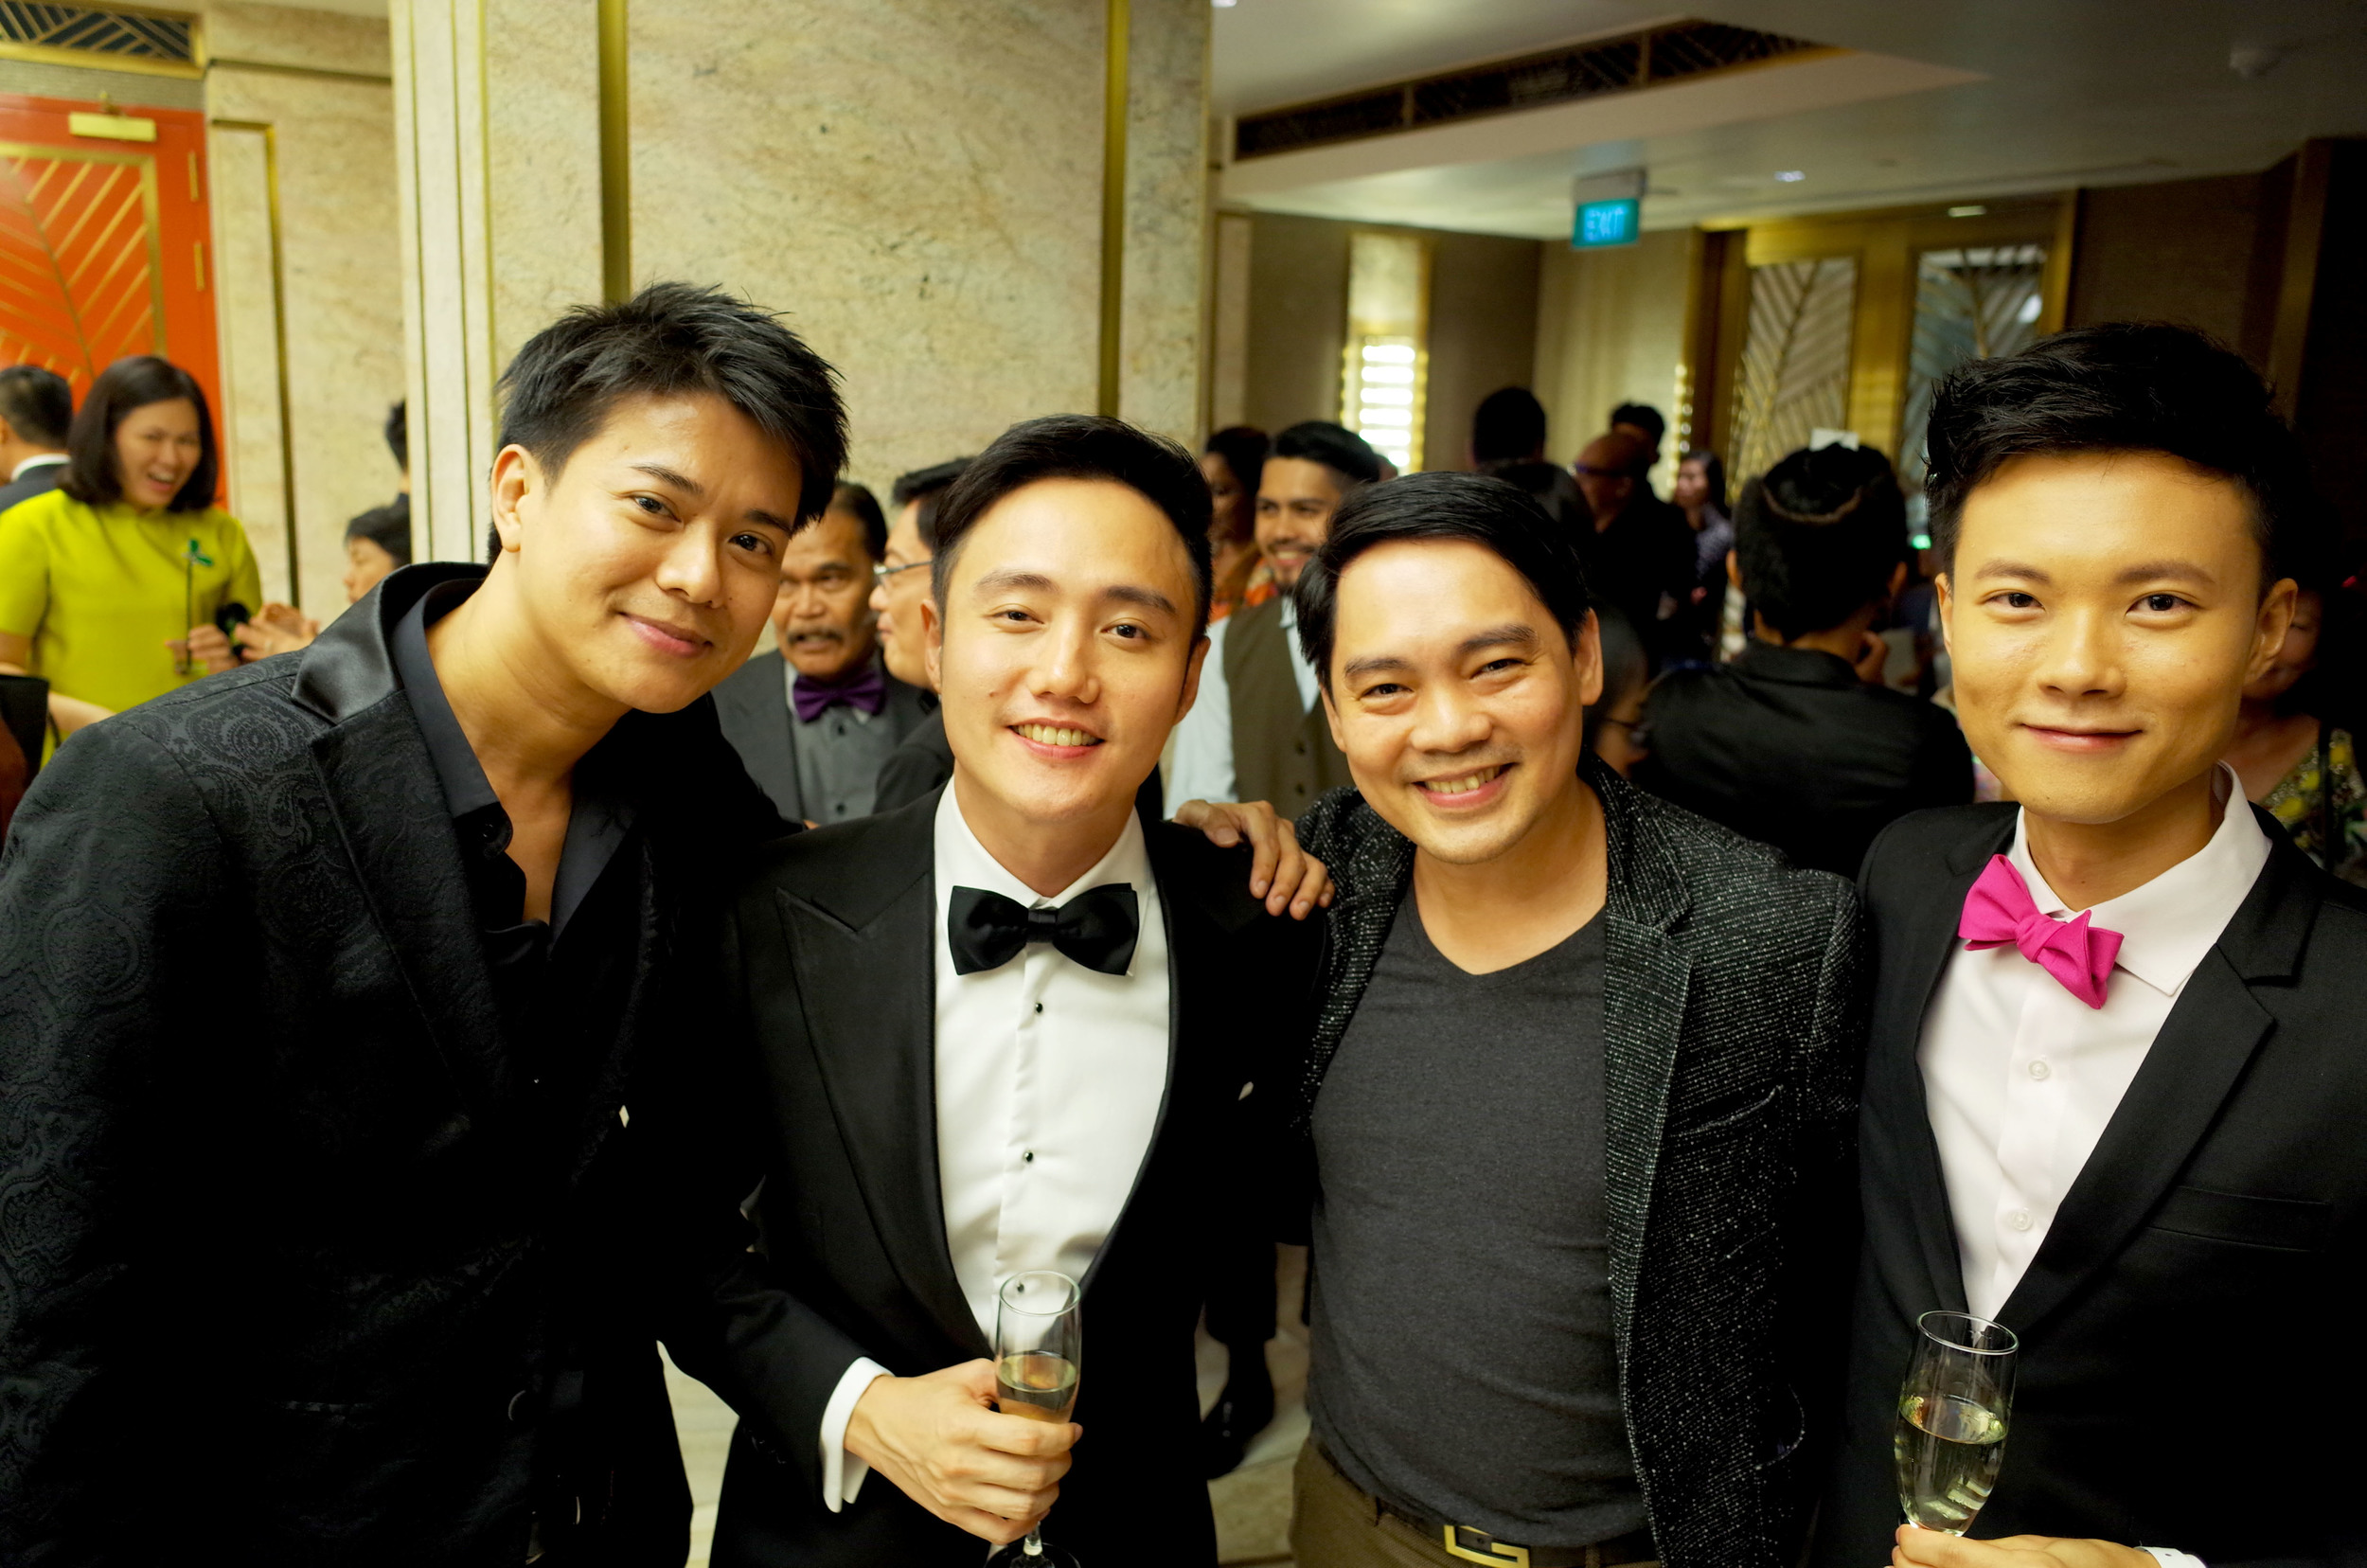 Azman and Chris with director Boo Jun Feng and producer Leon Cheo